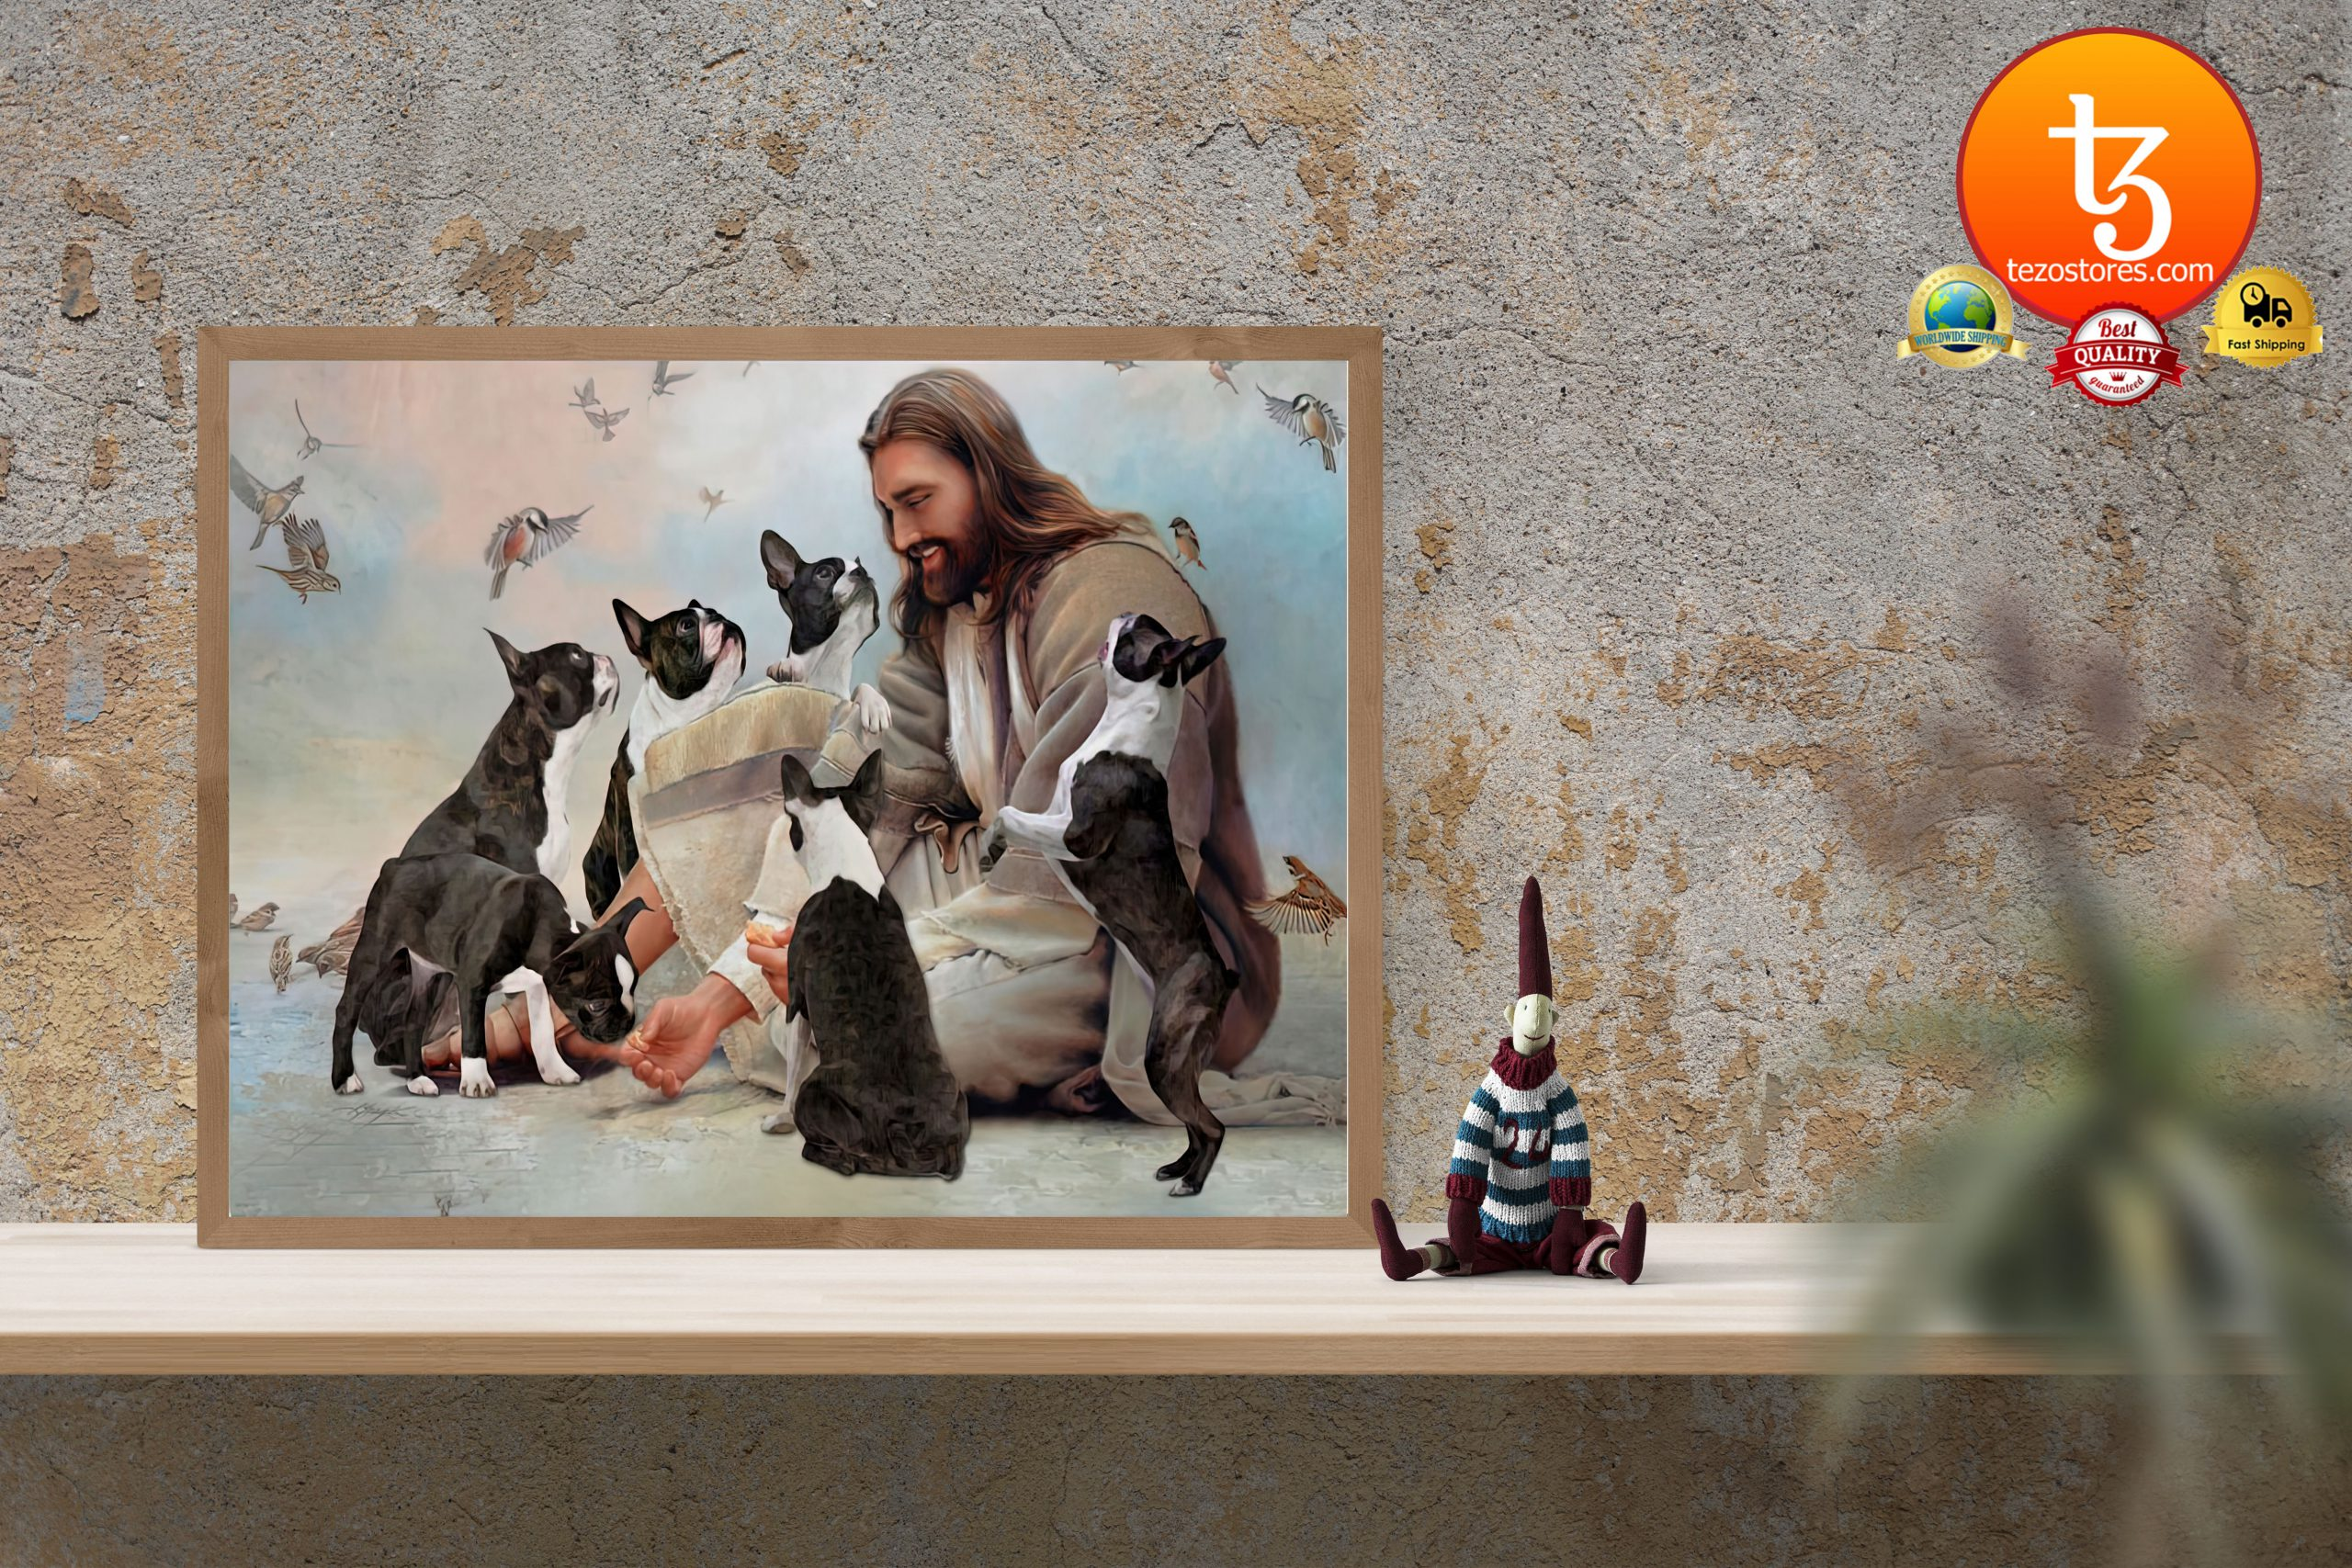 God surrounded by Boston Terrier angels Poster3